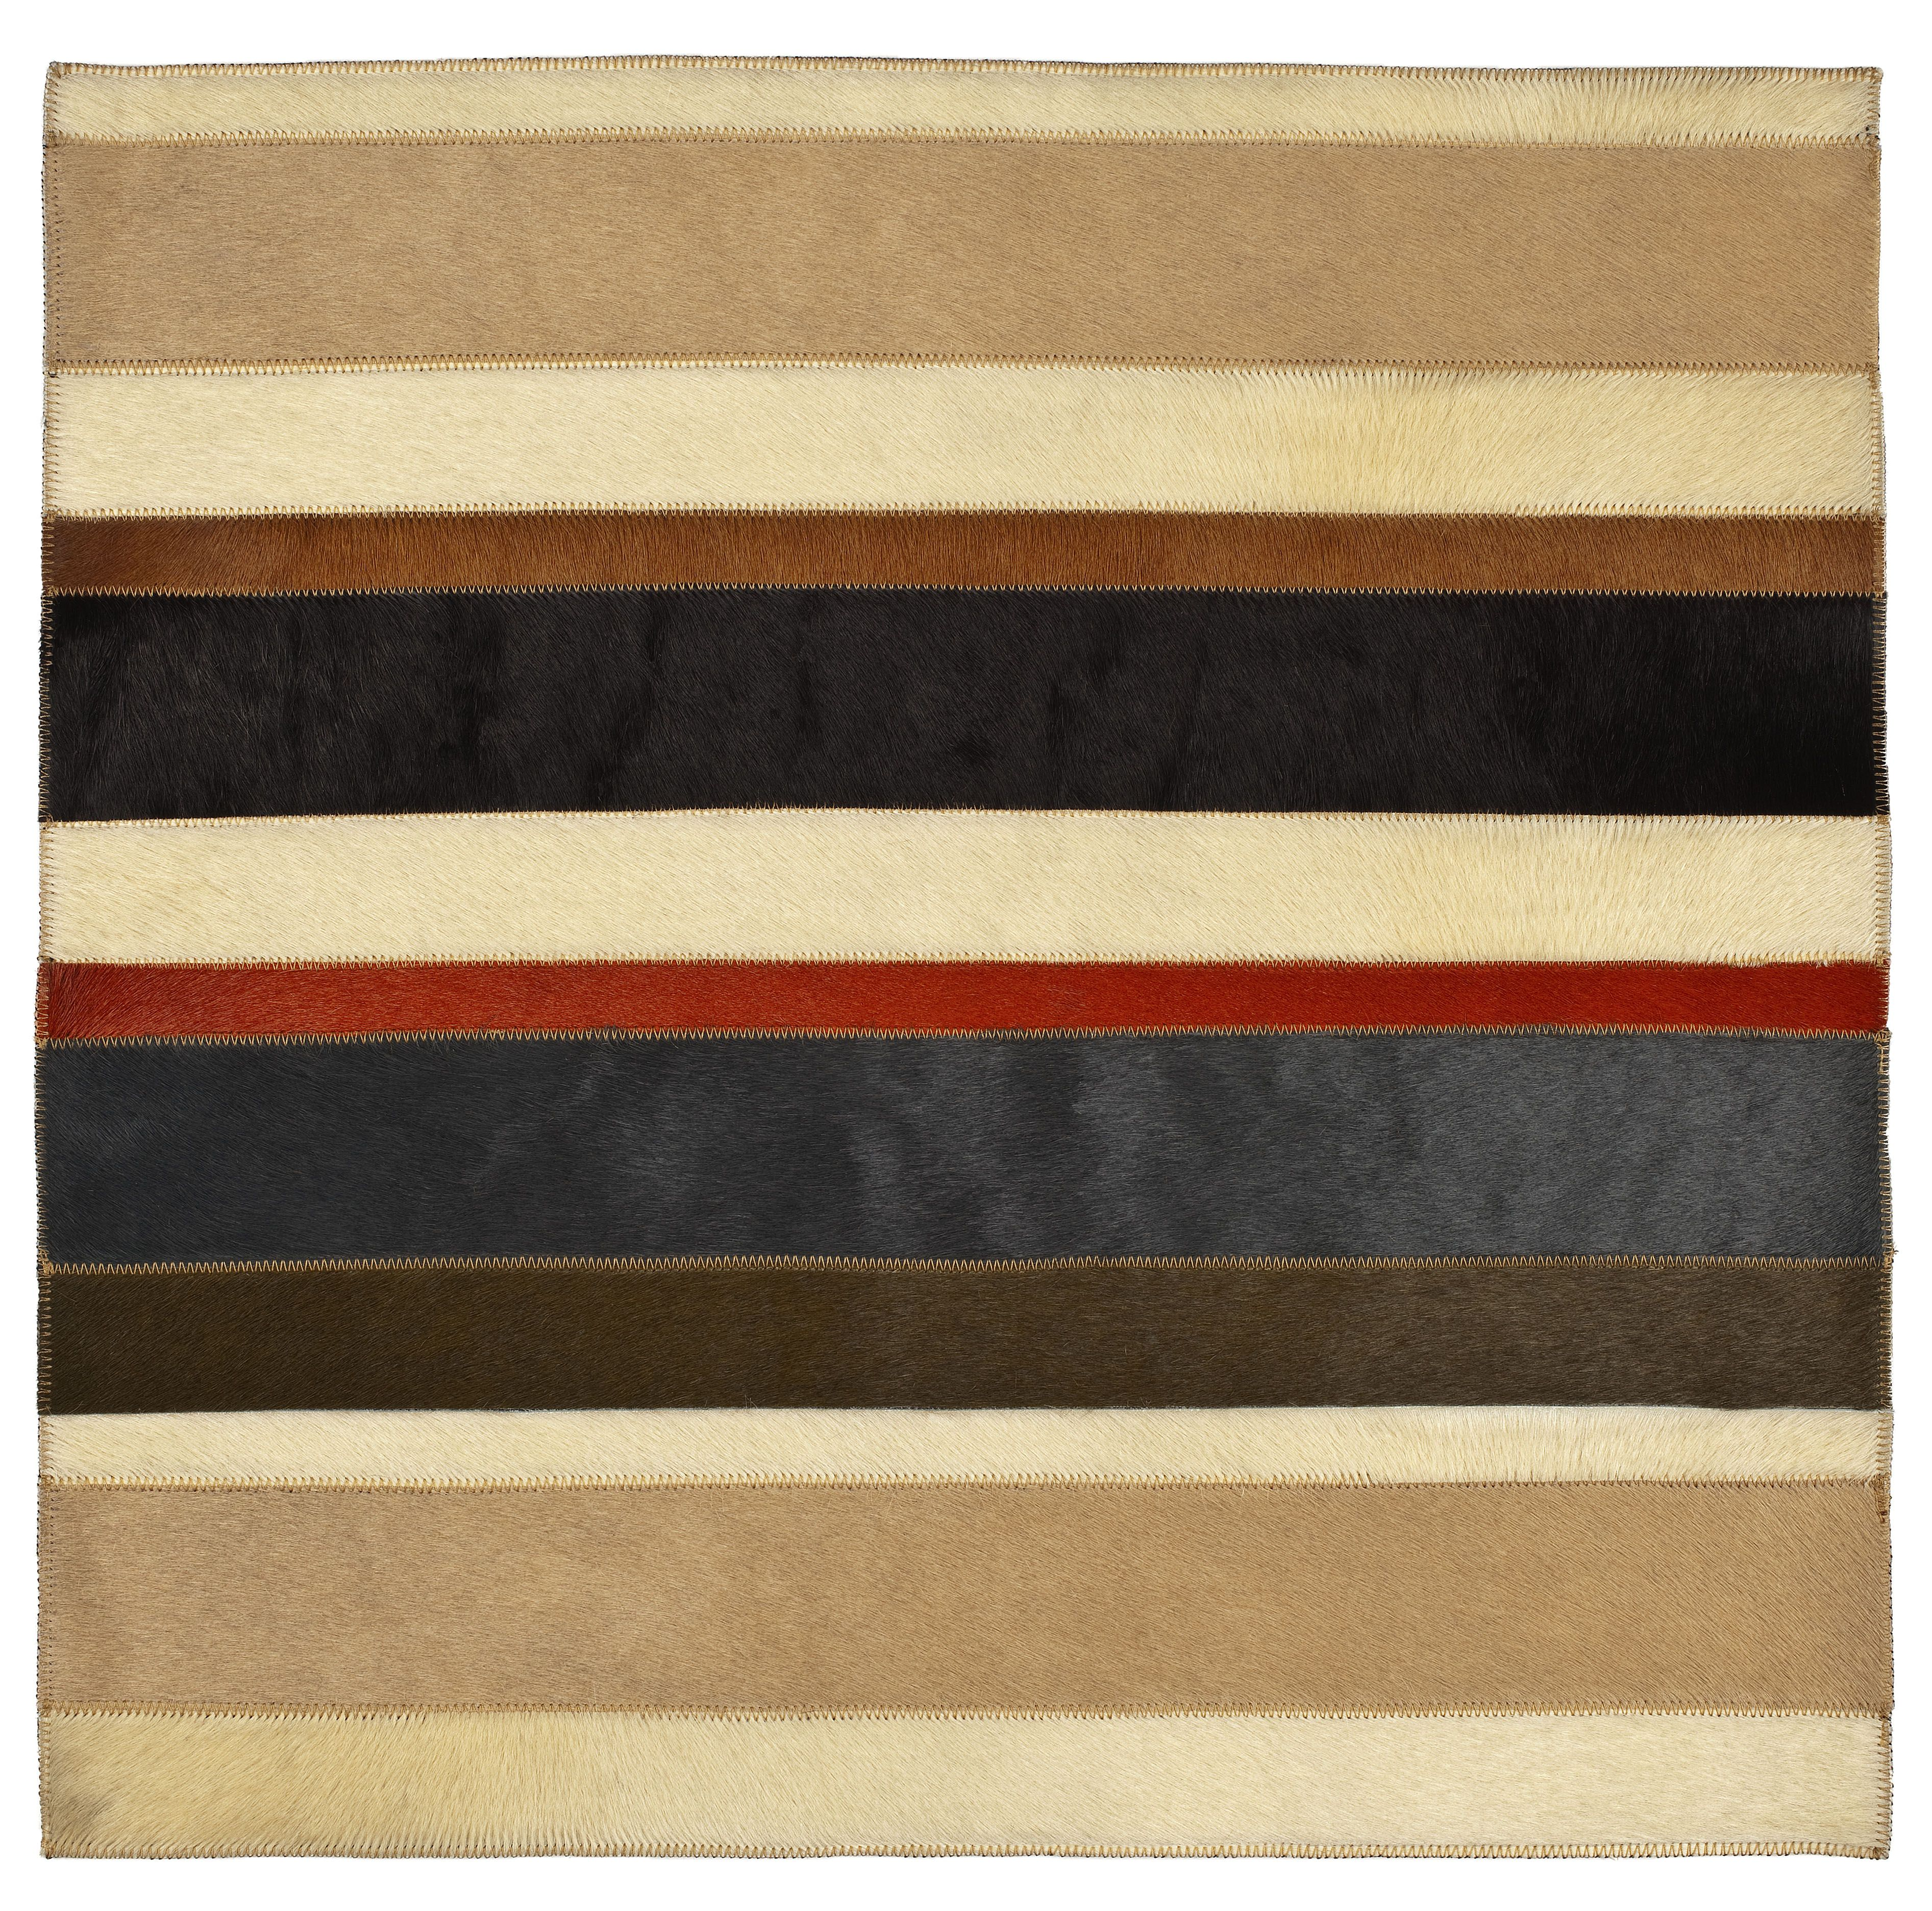 "Edelman Leather ""barcode"" cowhide rug in multi-colors."